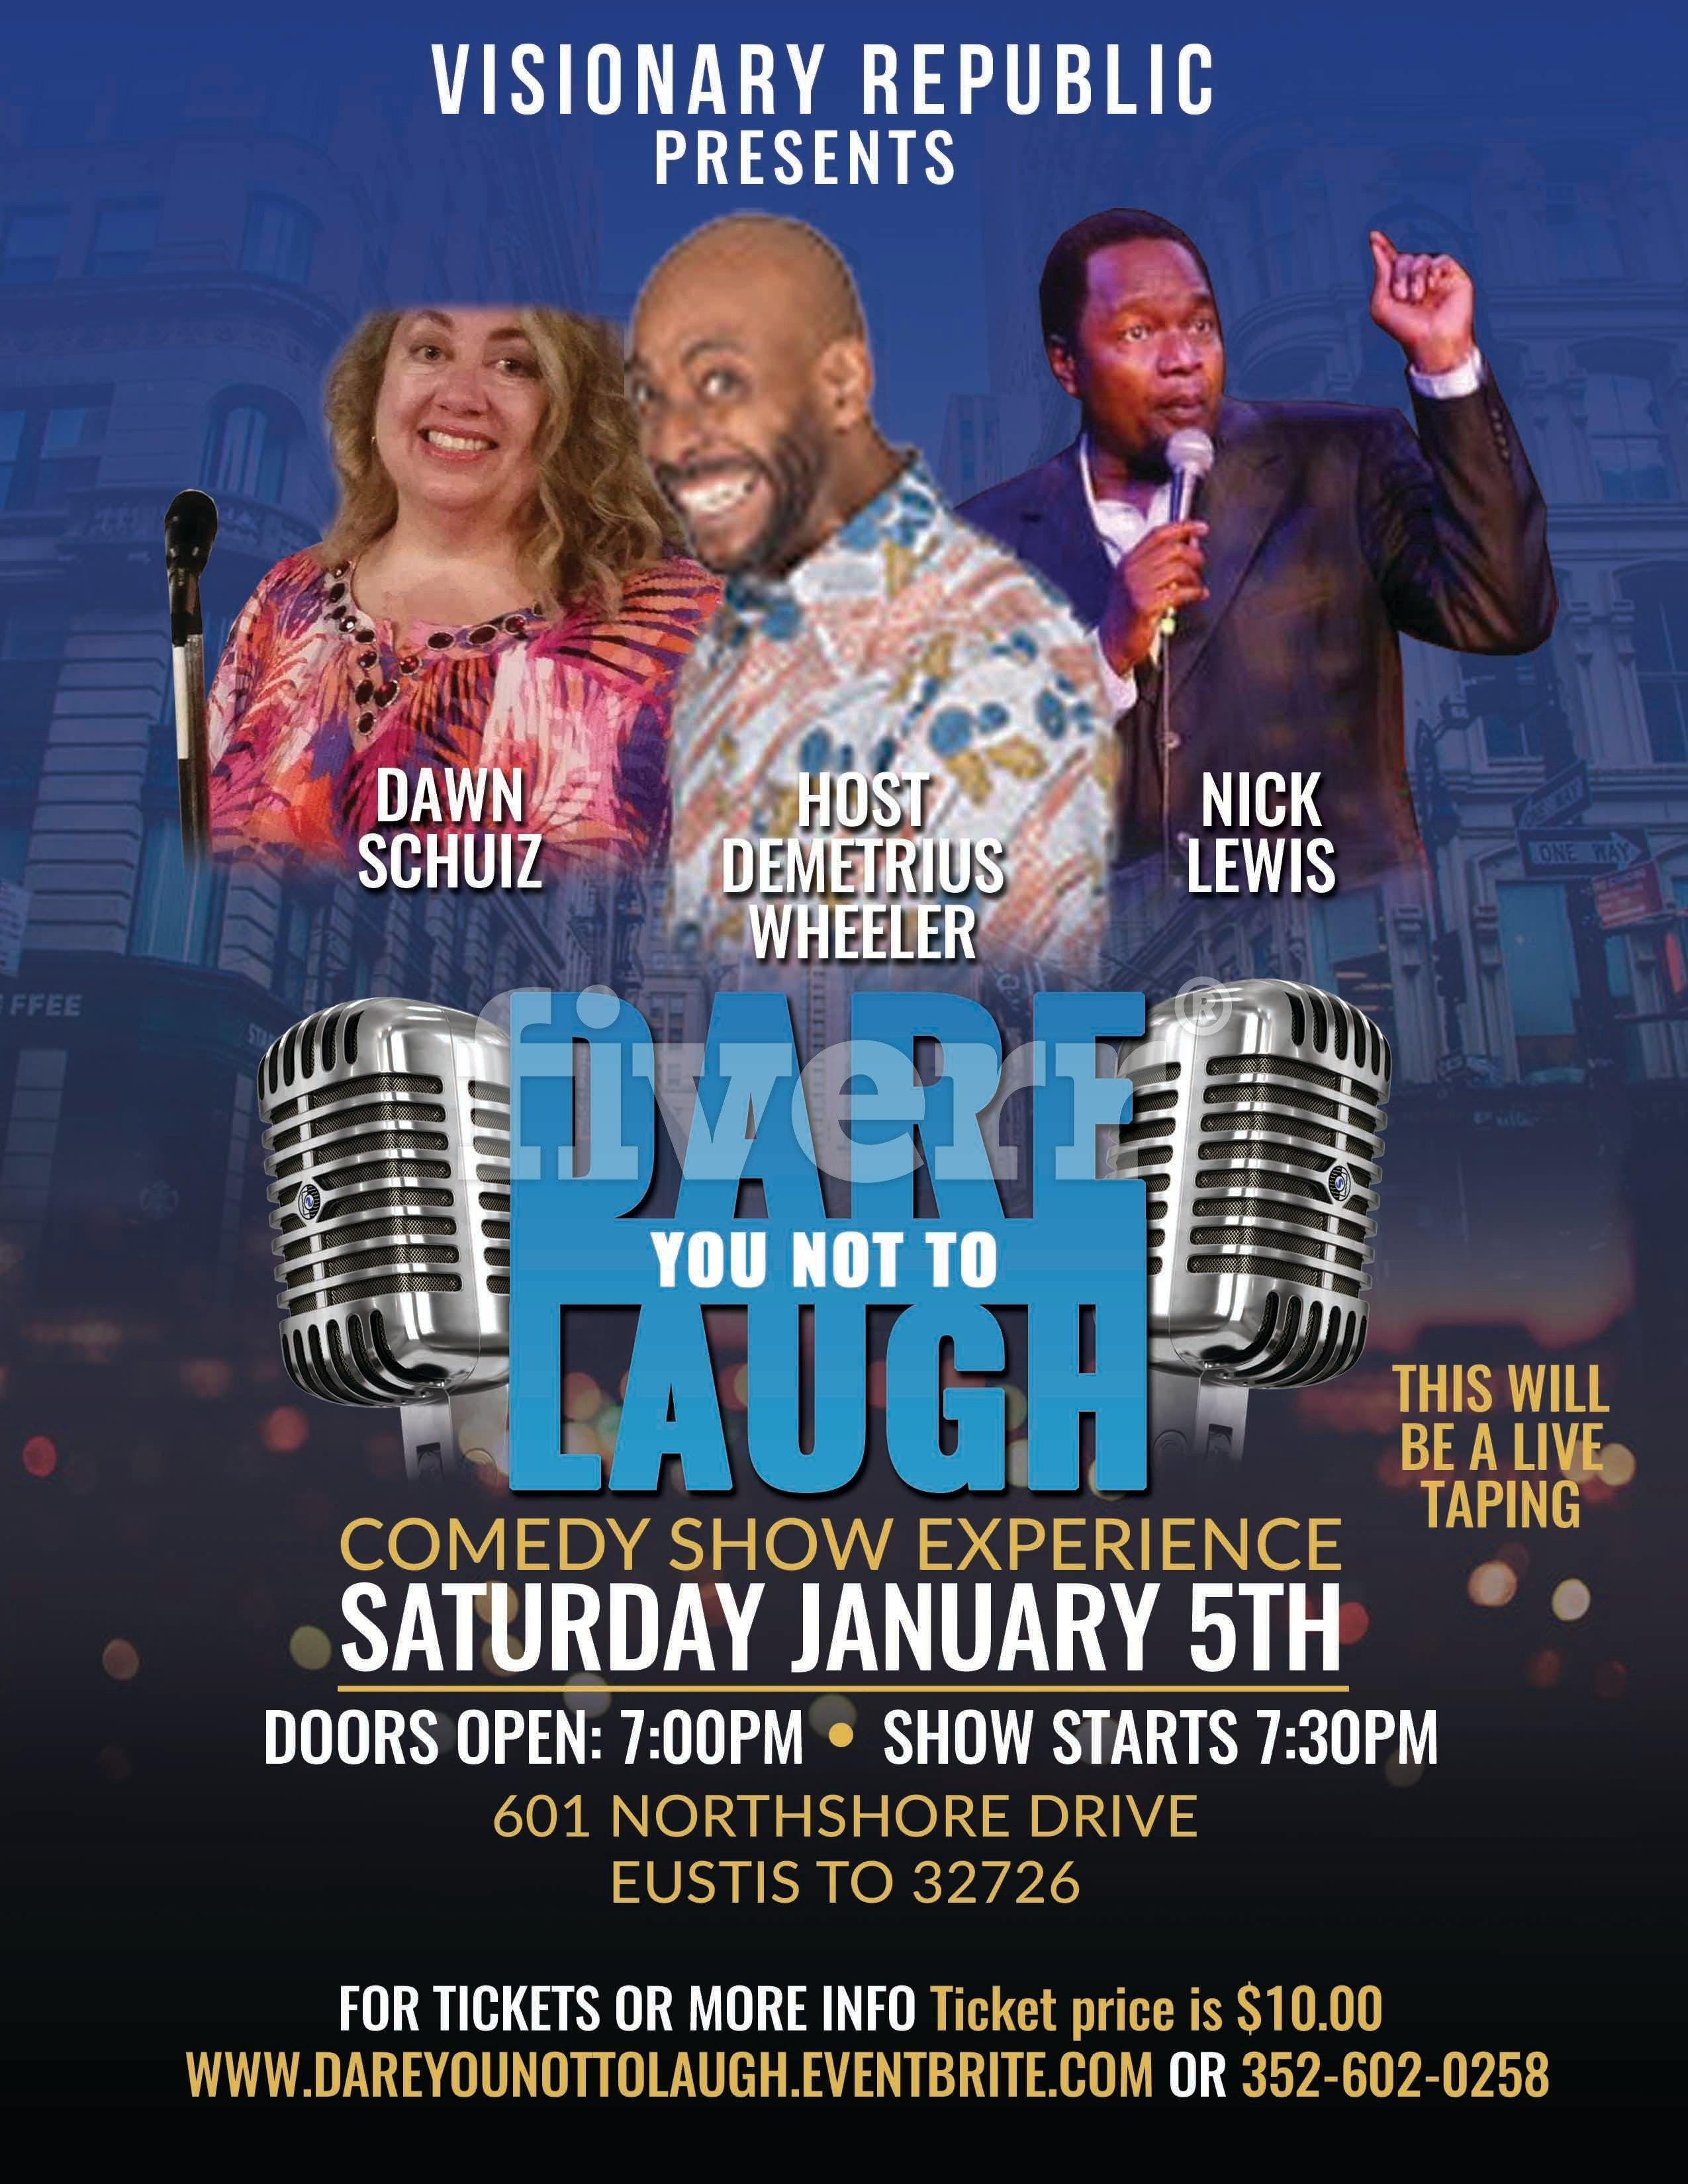 DARE YOU NOT TO LAUGH CLEAN COMEDY SHOW